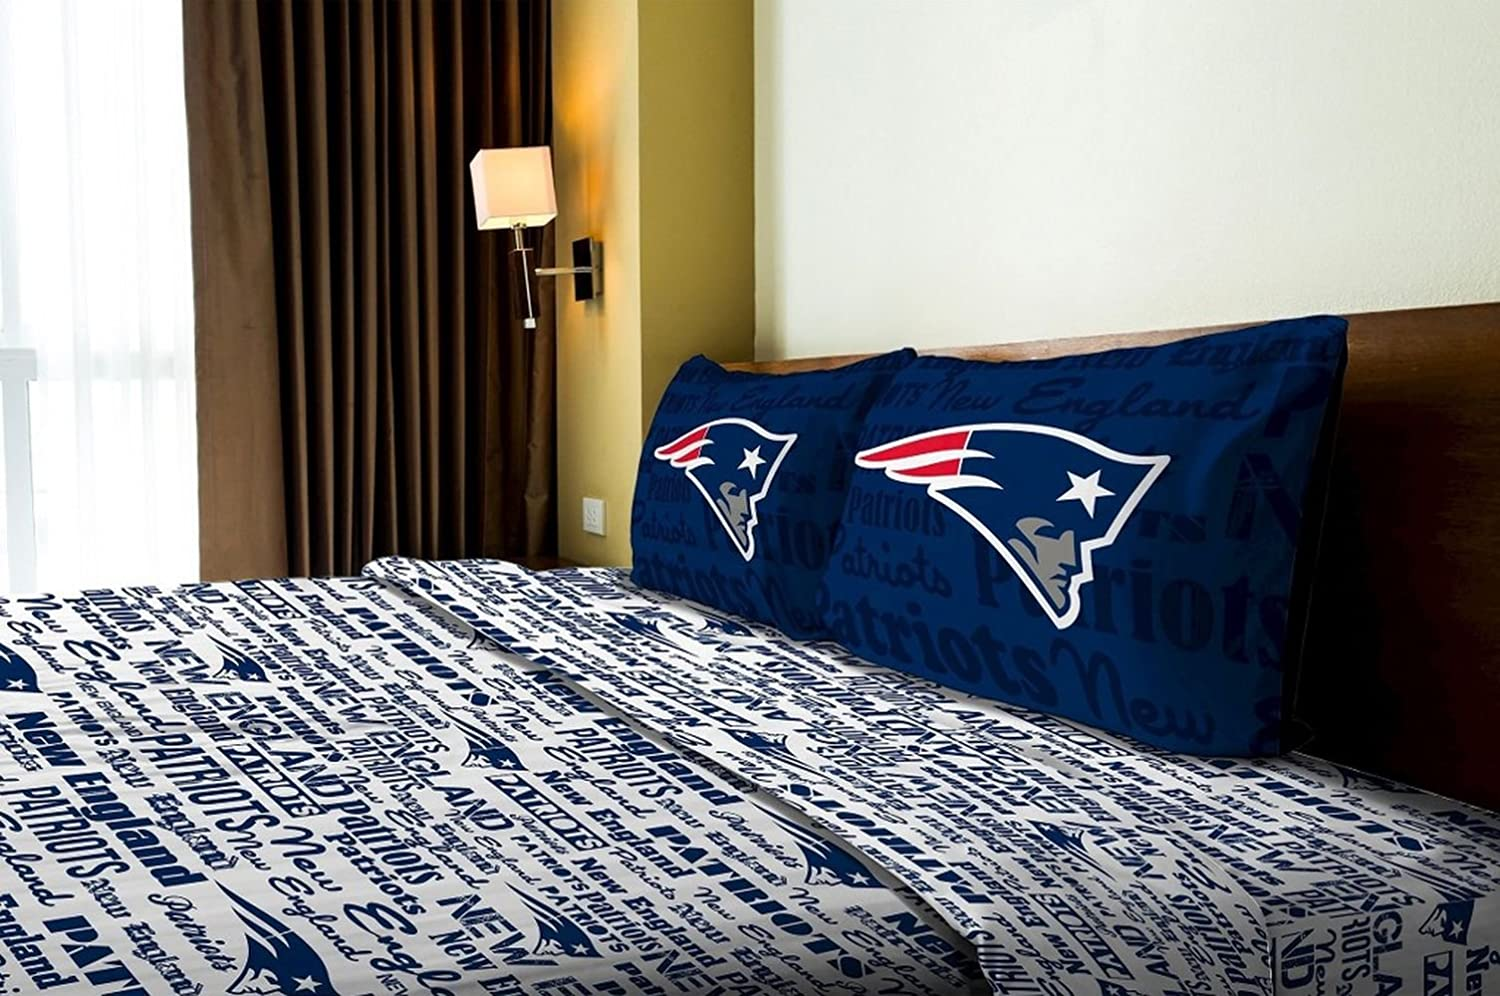 Delicieux Amazon.com: New England Patriots Full Comforter U0026 Sheet Set (5 Piece  Bedding): Home U0026 Kitchen